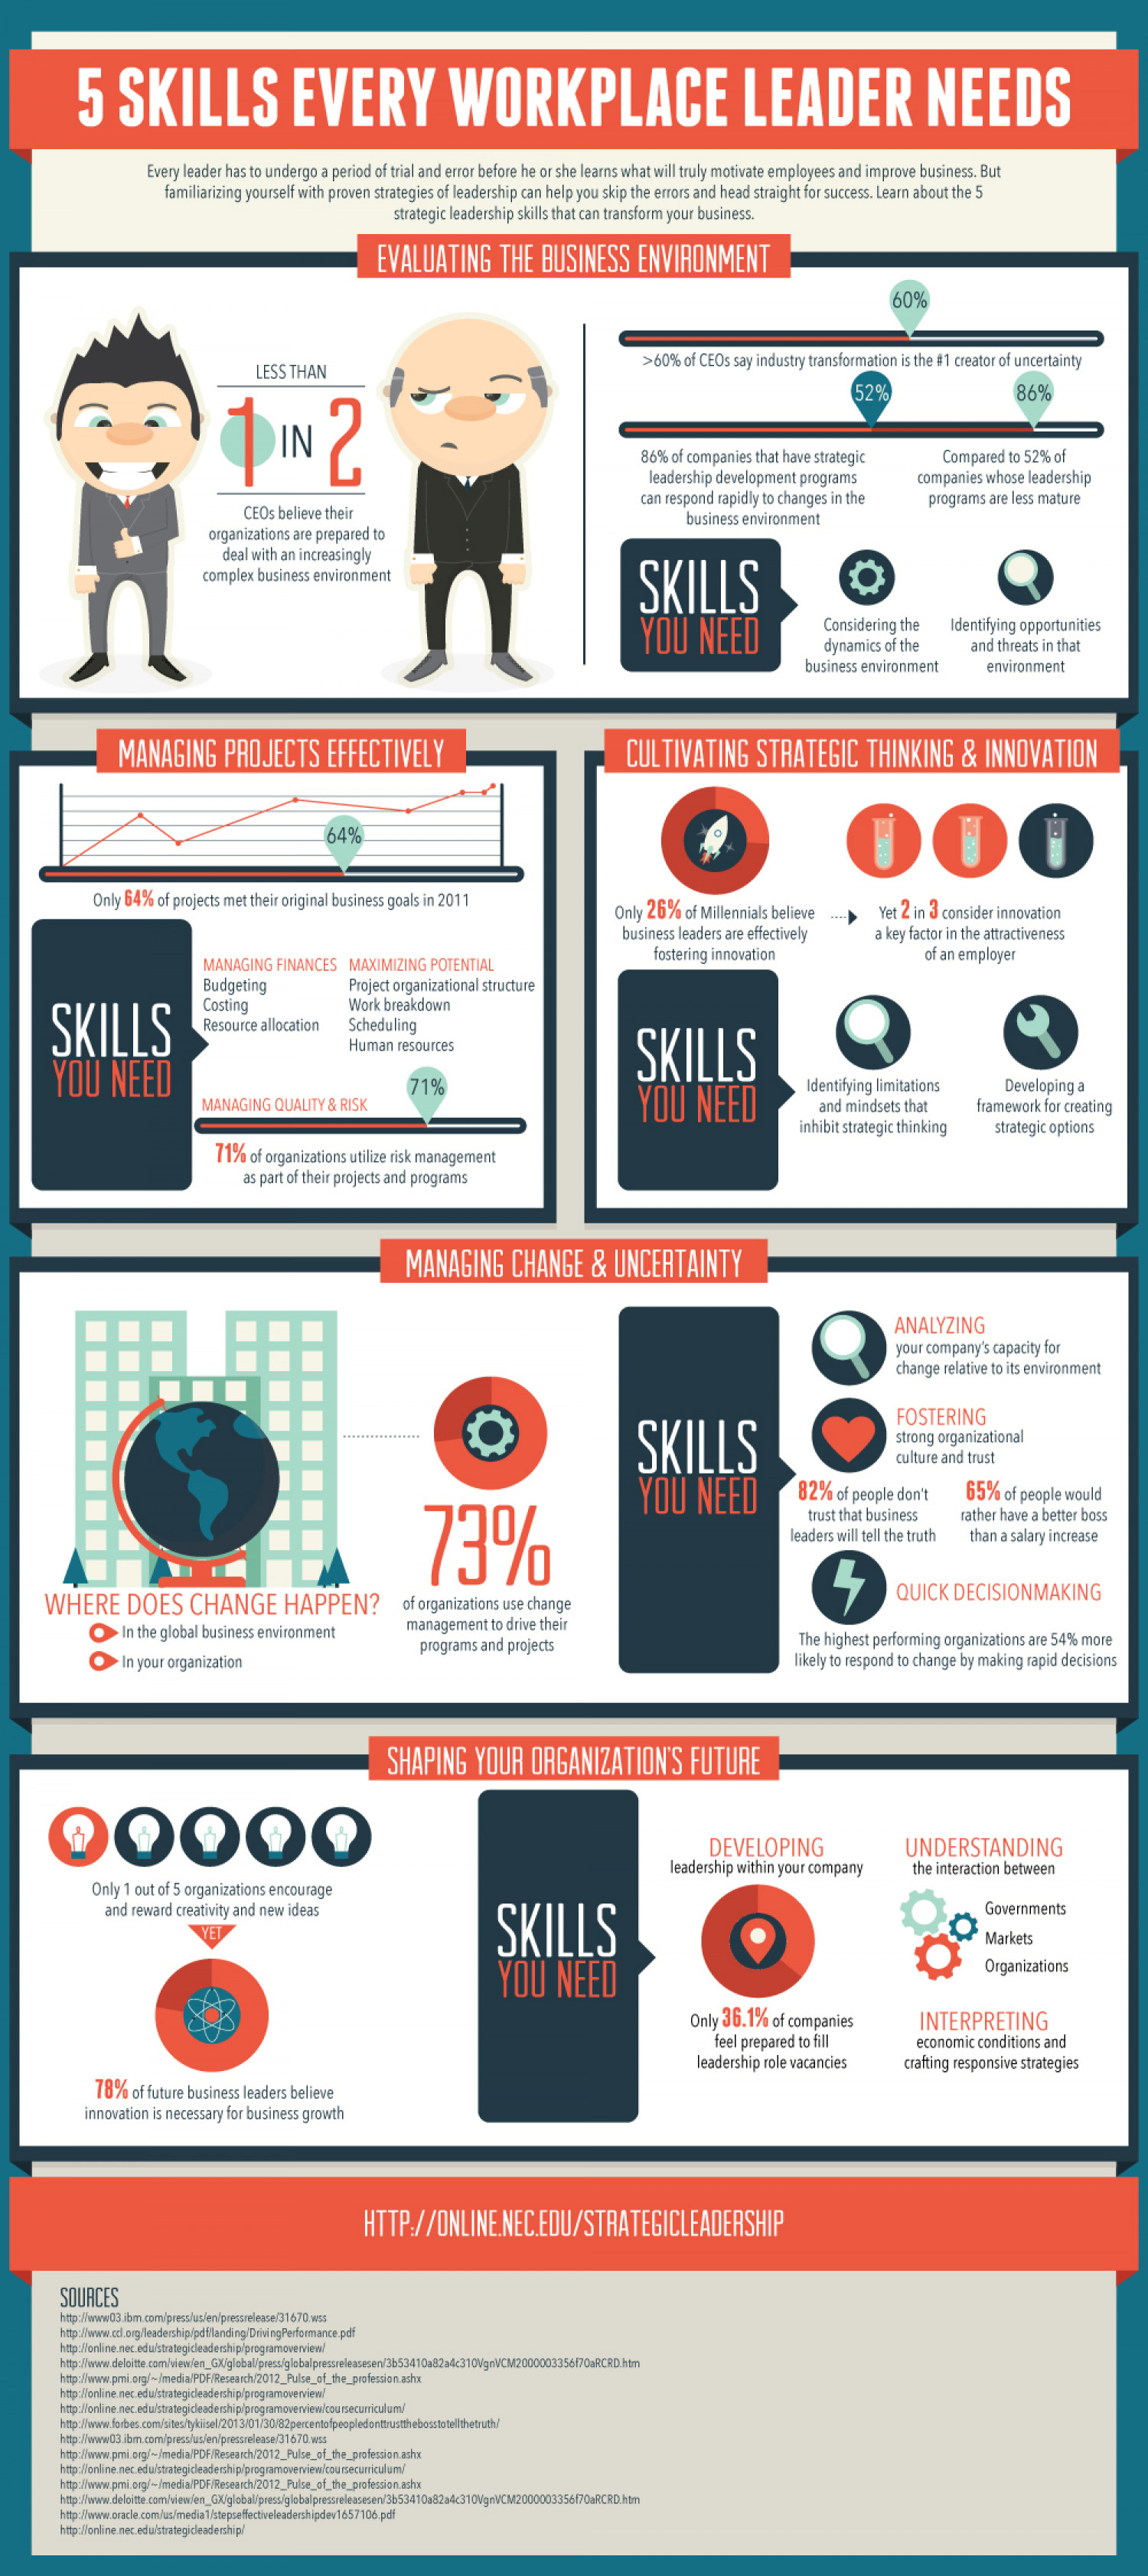 5 Skills Every Workplace Leader Needs Infographic